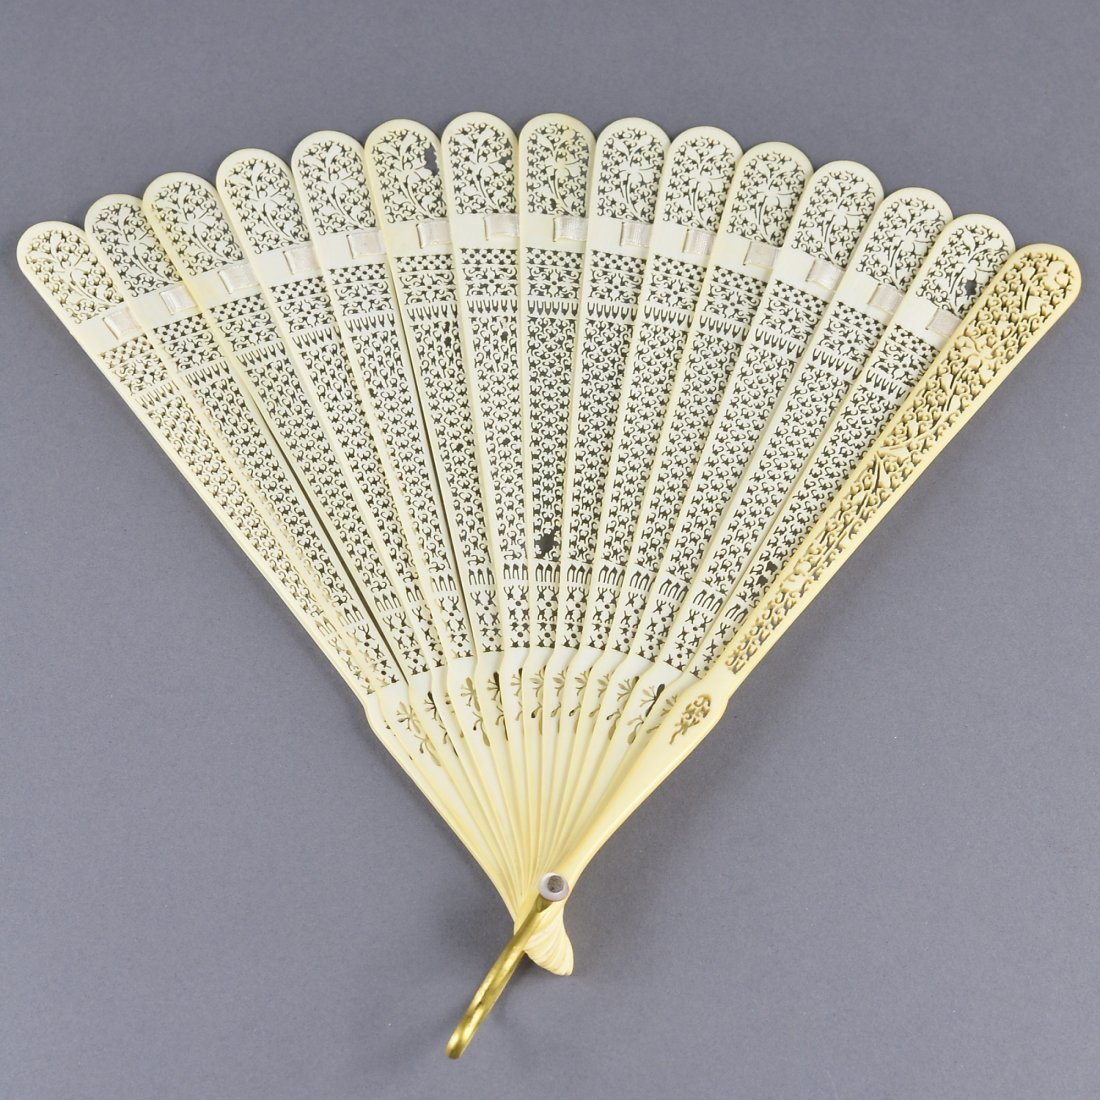 236: Chinese Ivory Carved Fan